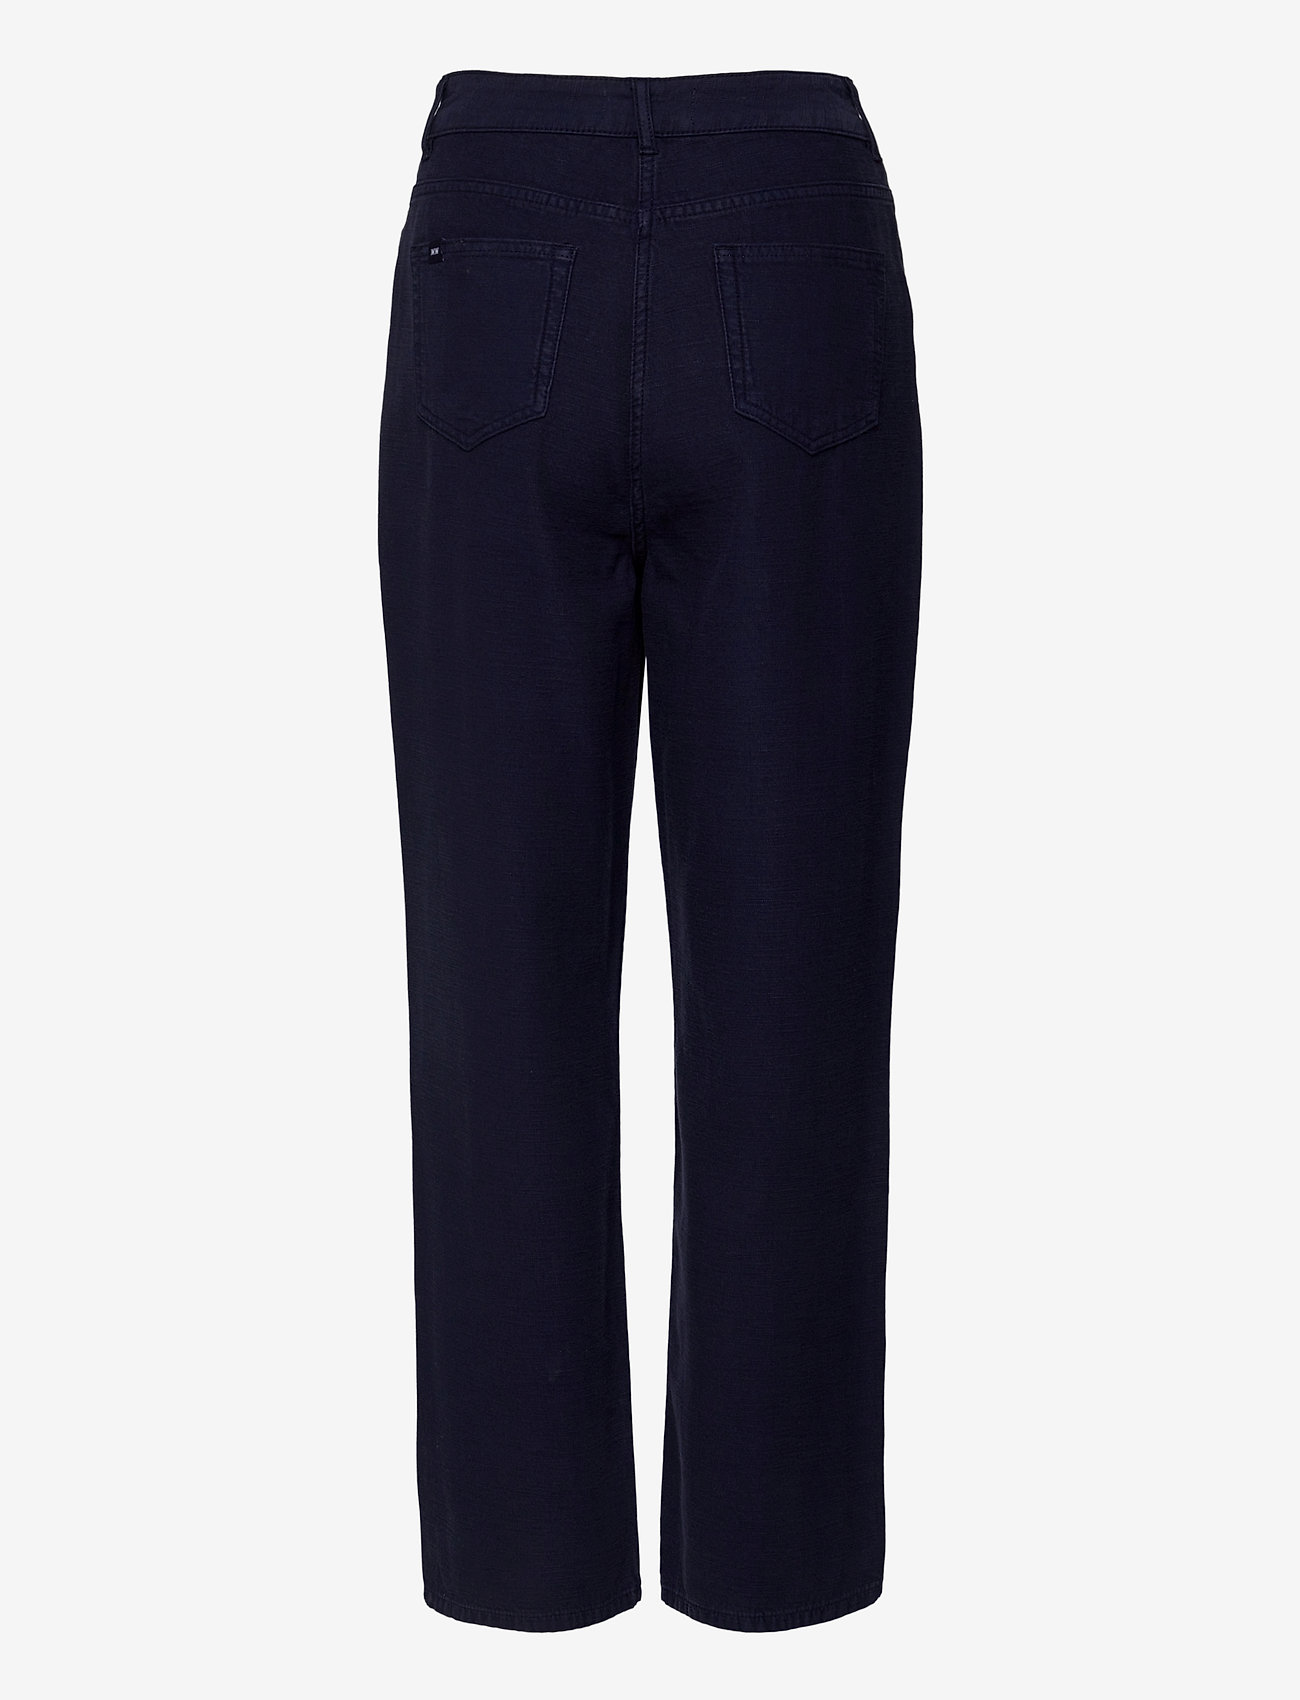 Wood Wood - Ilo jeans - straight jeans - navy - 1